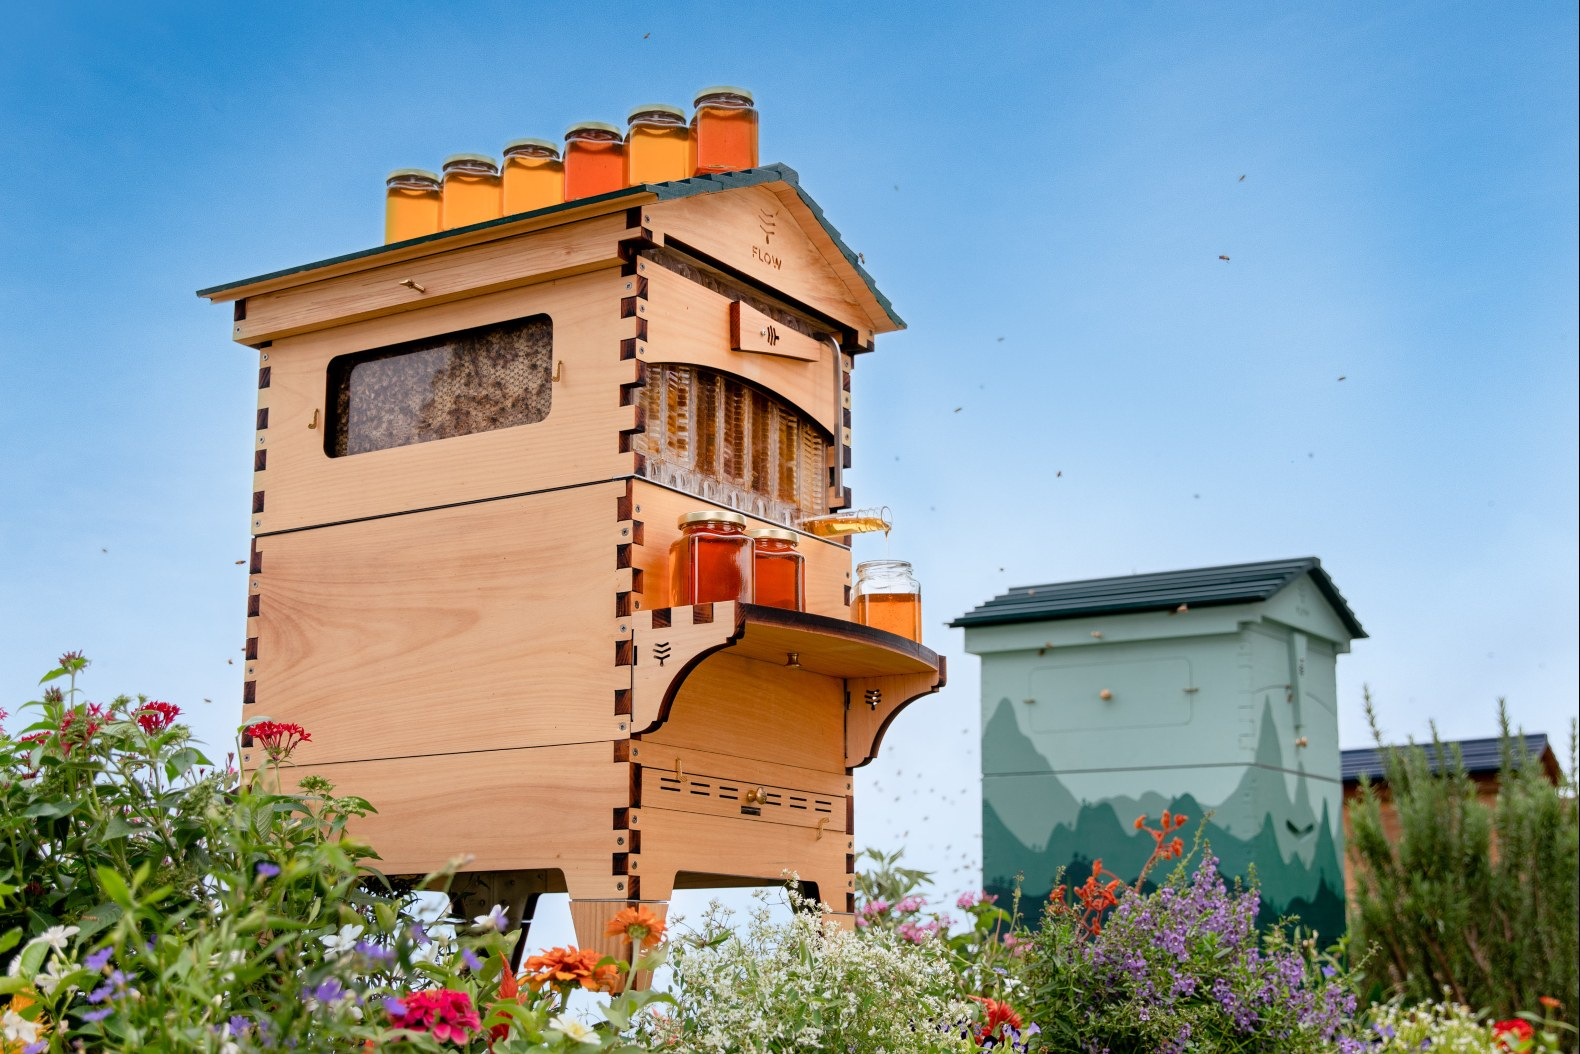 Flow Hive Takes The Hassle Out Of Honey Harvesting